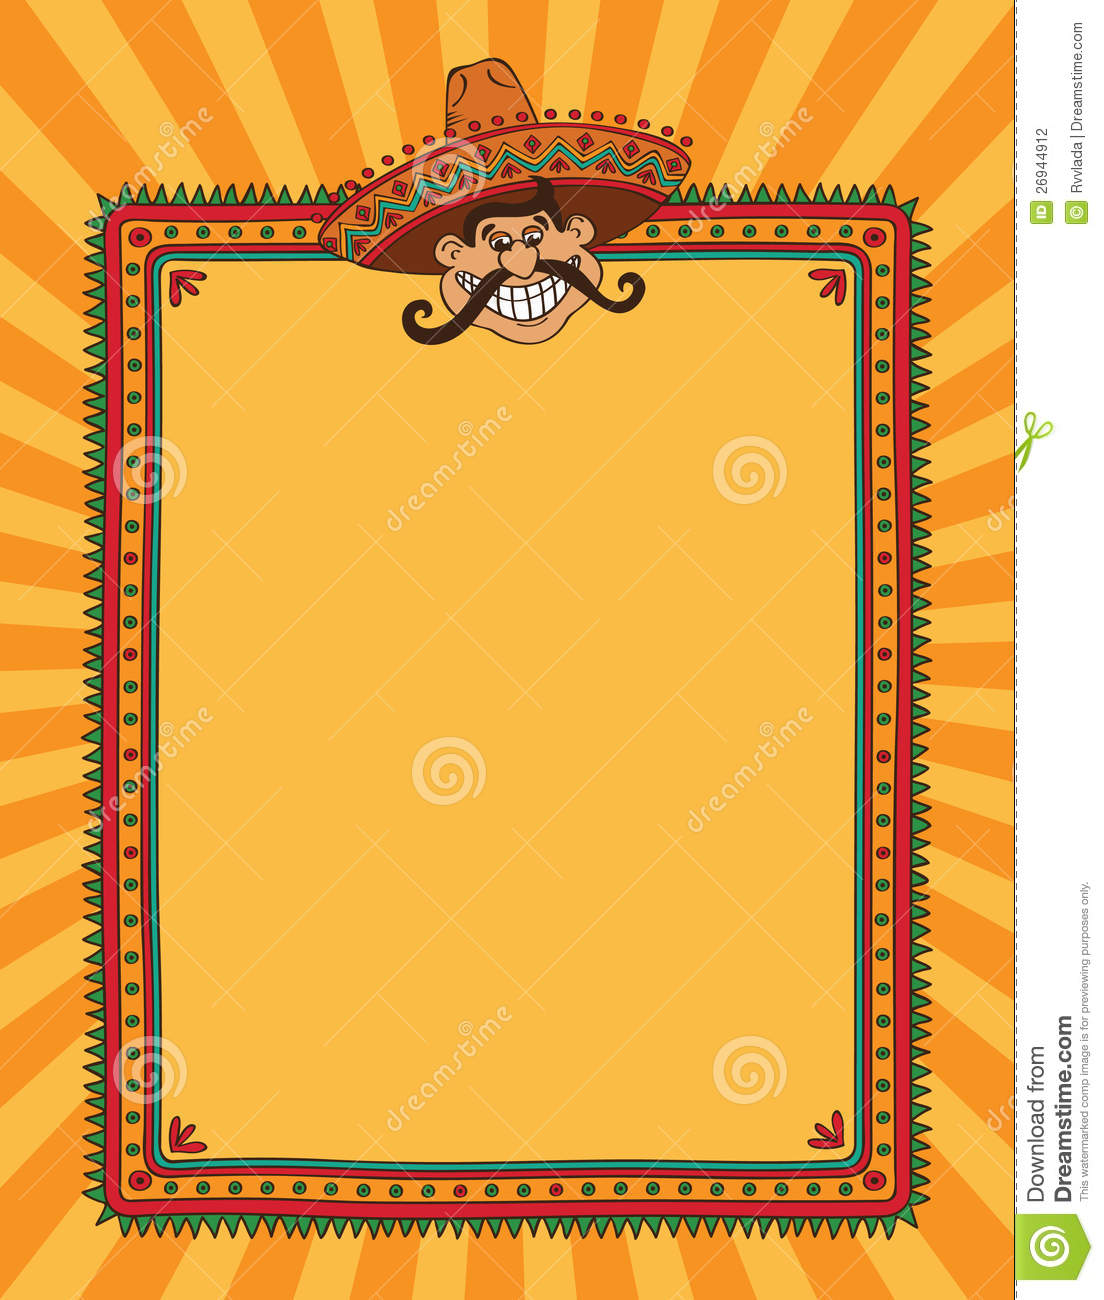 Mexican Fiesta Border Mexican frame with man in 1104x1300